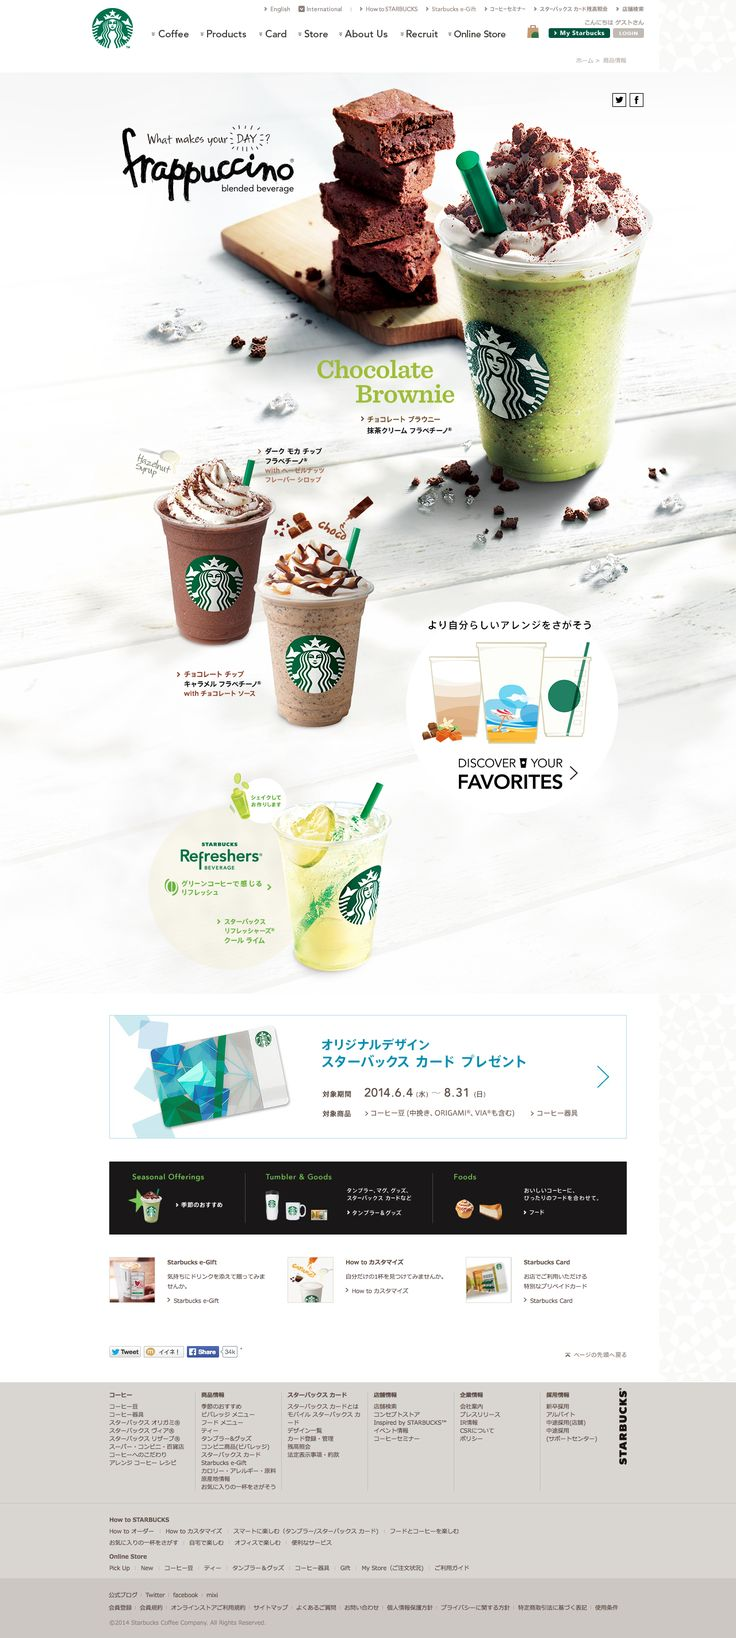 Unique Web Design, Starbucks Japan #WebDesign #Design